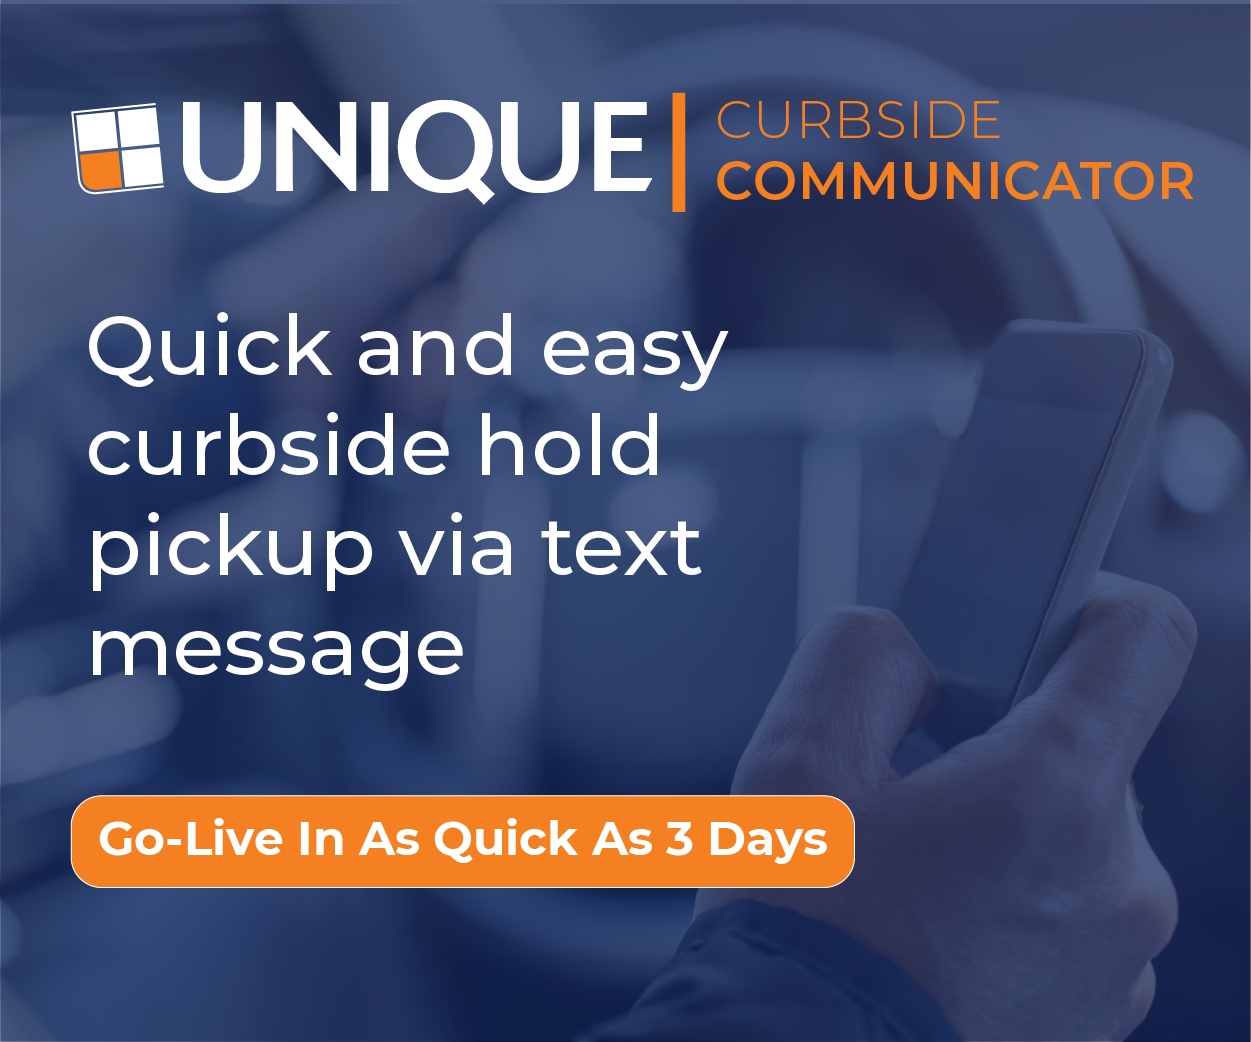 Ad for Unique LLC Quick and Easy Curbside Hold Pickup Via Text Message